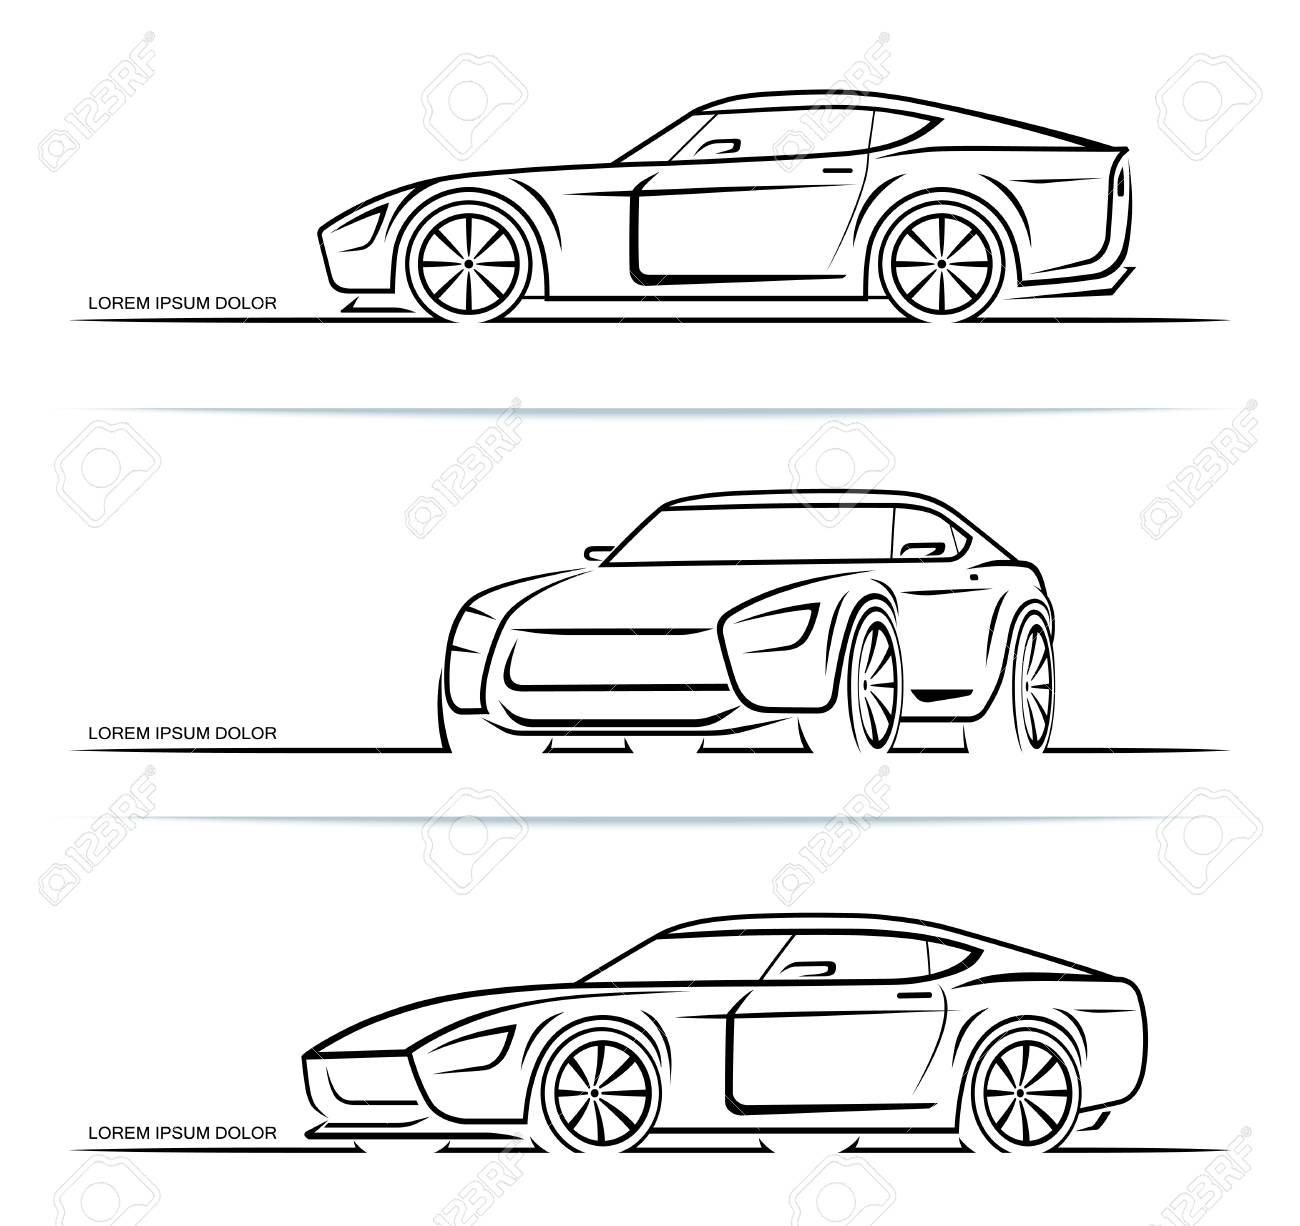 Set of sports car silhouettes outlines contours isolated on white background. Vector illustration - 120927324